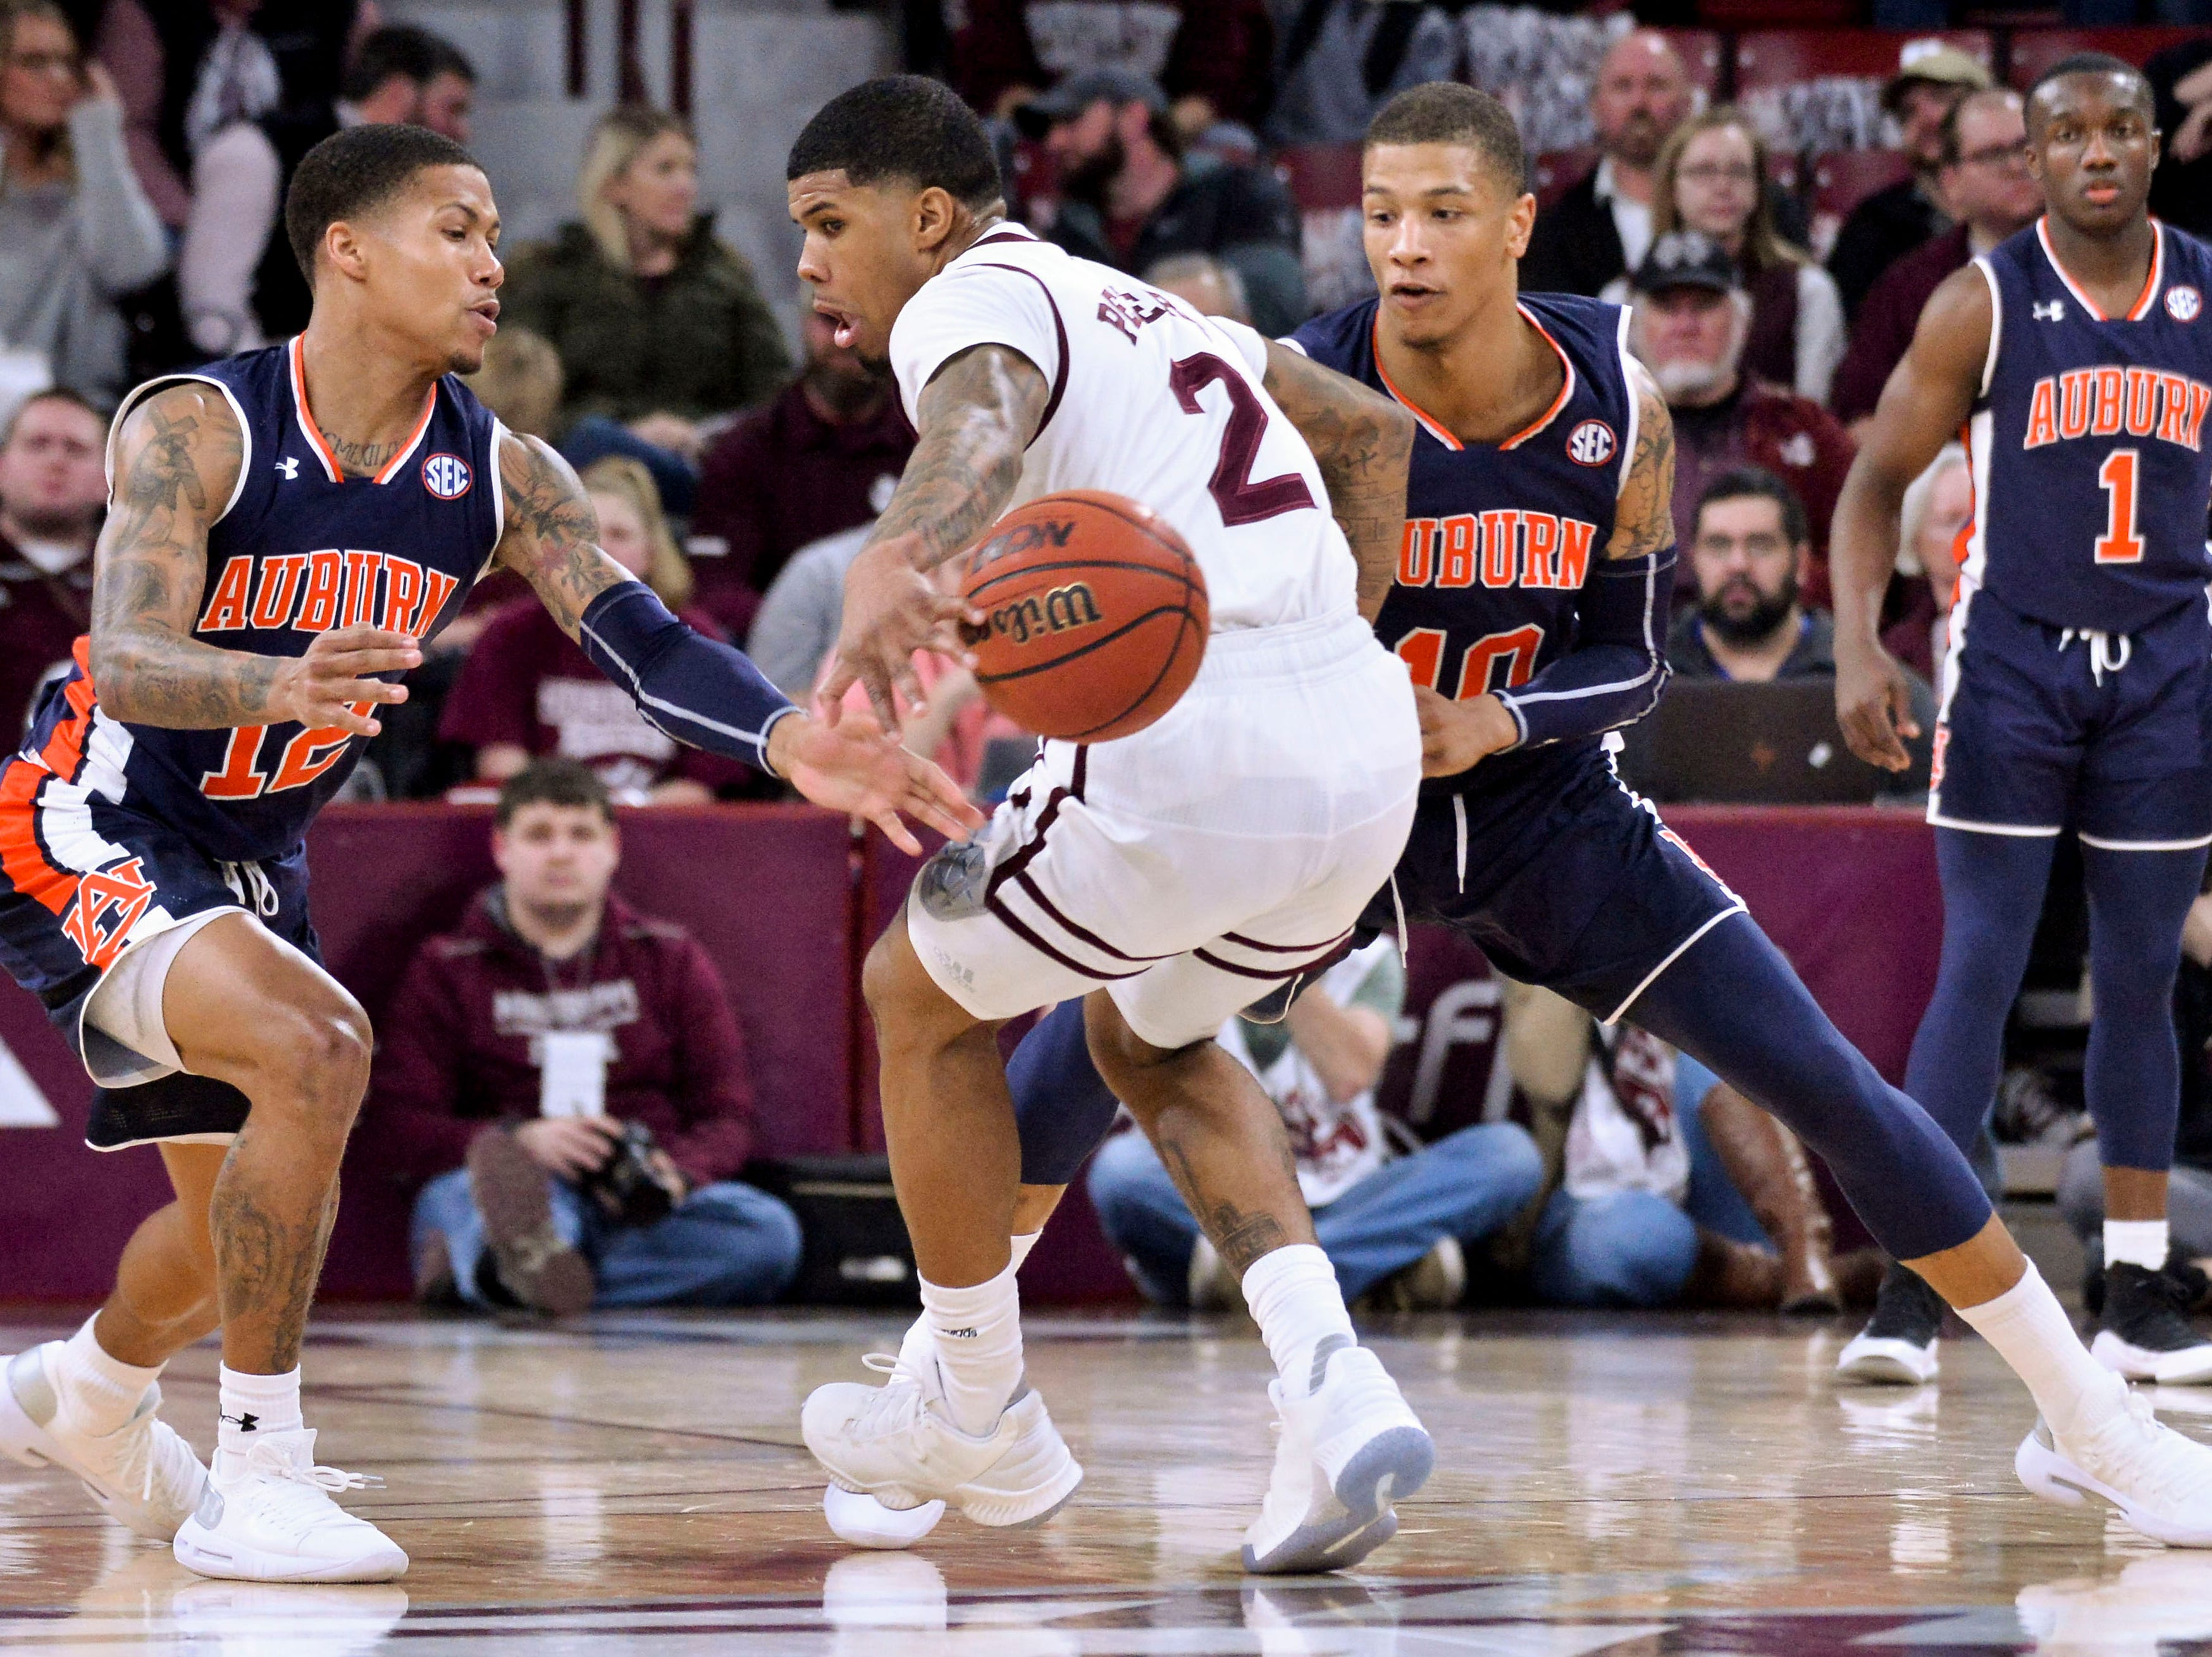 Jan 26, 2019; Starkville, MS, USA; Mississippi State Bulldogs guard Lamar Peters (2) loses control of the ball against Auburn Tigers guard J'Von McCormick (12) and guard Samir Doughty (10) during the first half at Humphrey Coliseum. Mandatory Credit: Matt Bush-USA TODAY Sports